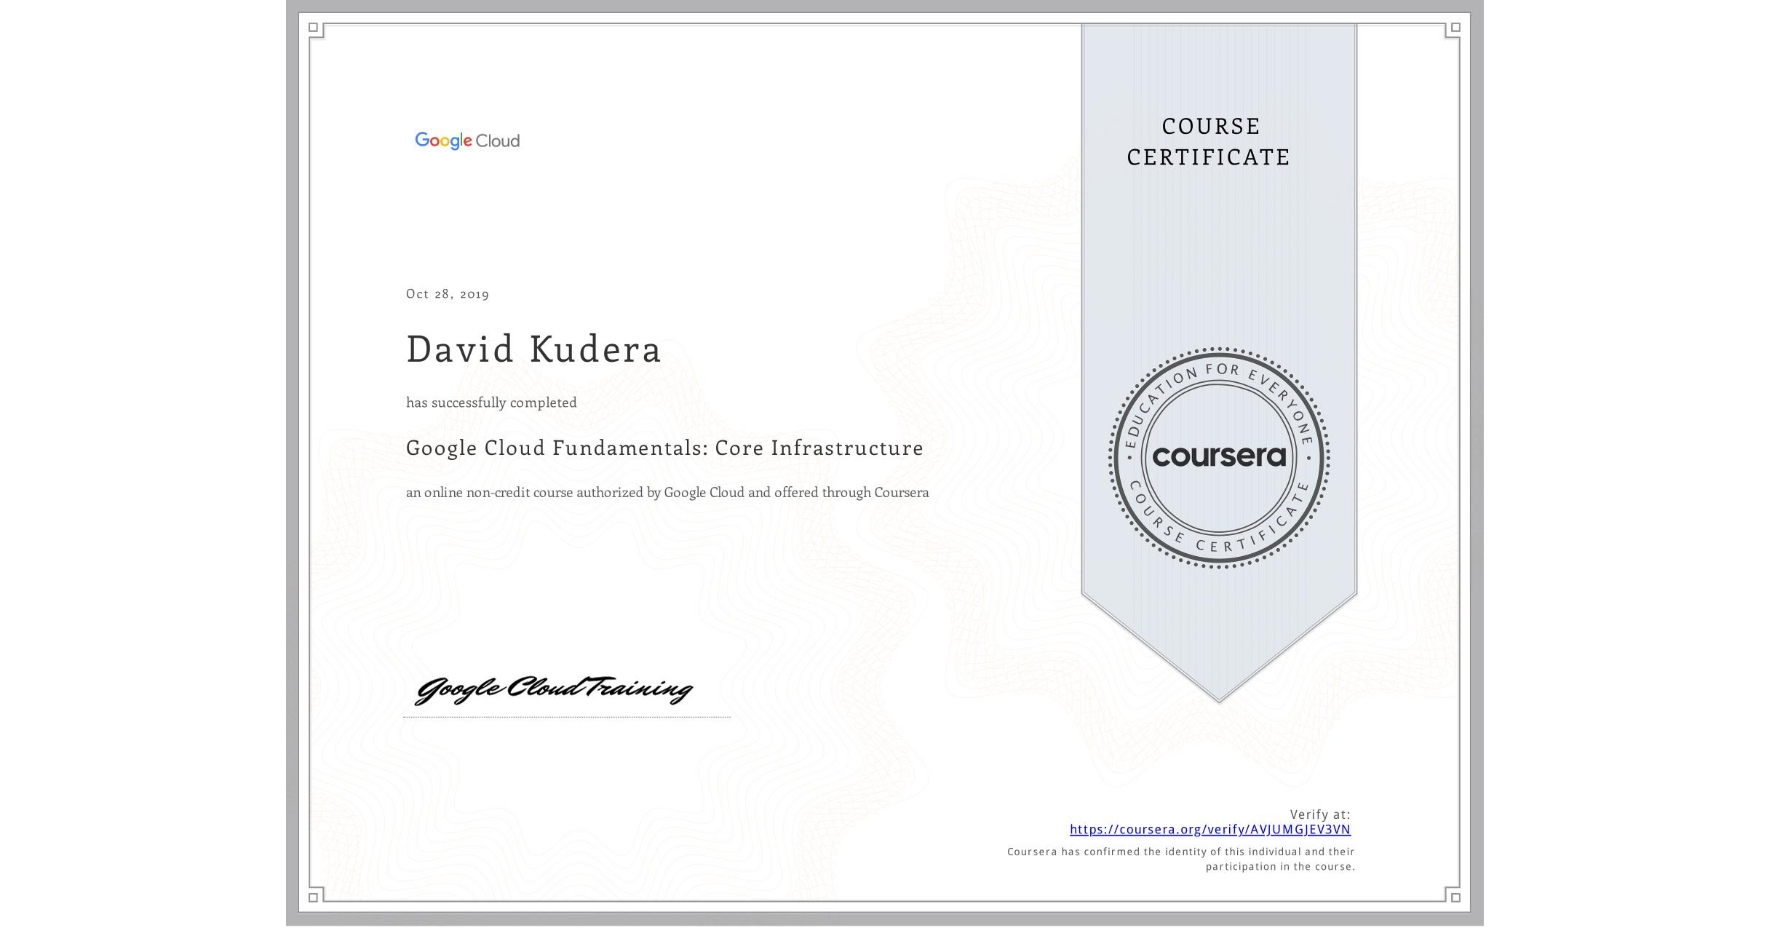 View certificate for David Kudera, Google Cloud Platform Fundamentals: Core Infrastructure, an online non-credit course authorized by Google Cloud and offered through Coursera